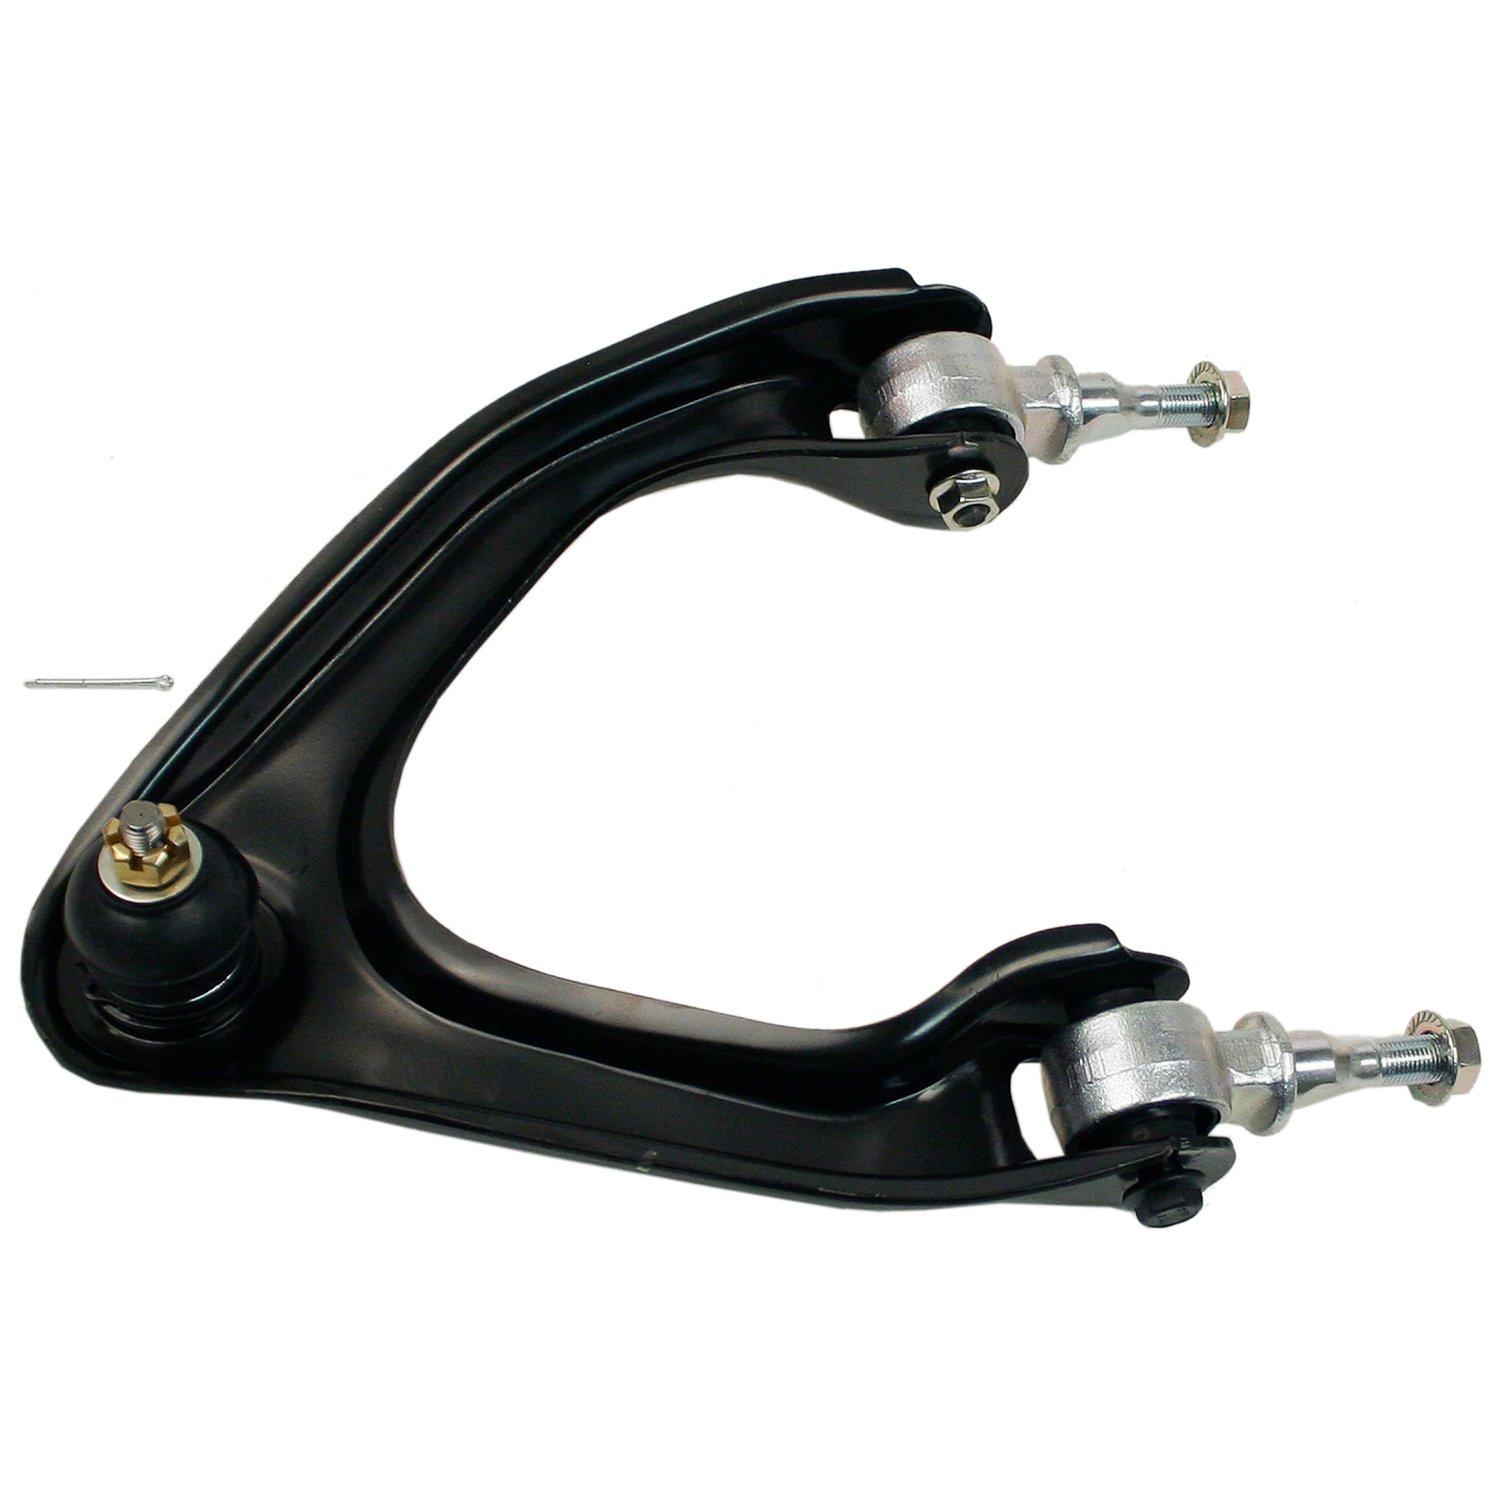 1996 Honda Prelude Suspension Control Arm And Ball Joint Assembly 1992 Stabilizer Mo Rk622738